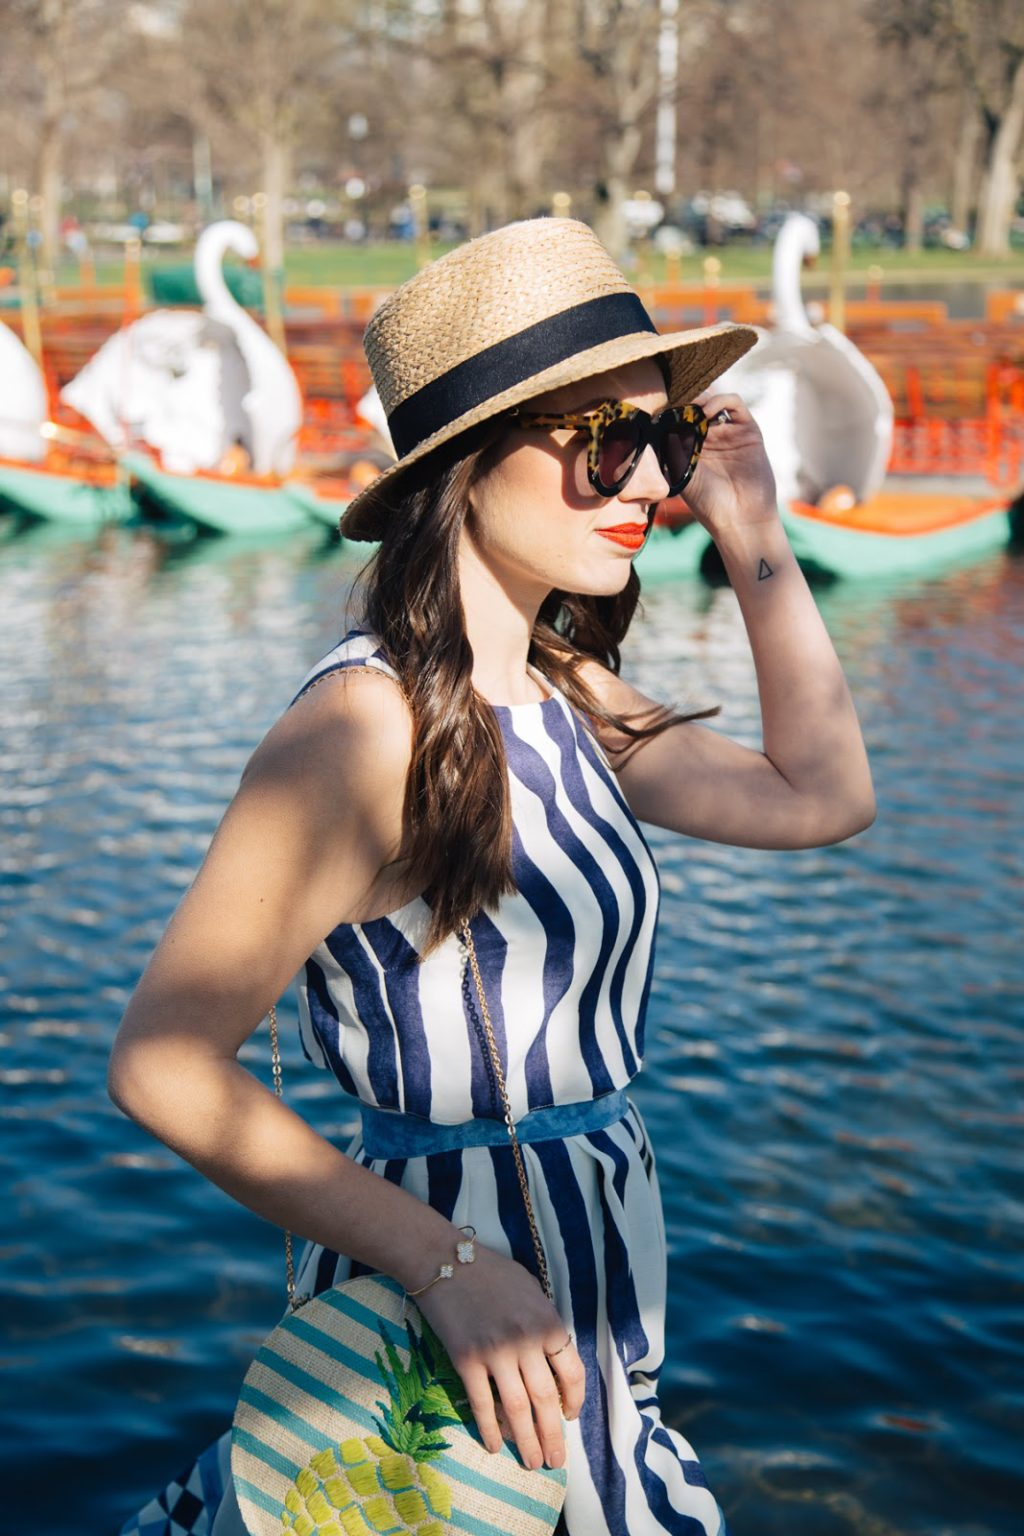 Hold on to your hat! A straw boater is perfect for a sunny spring day in Boston.